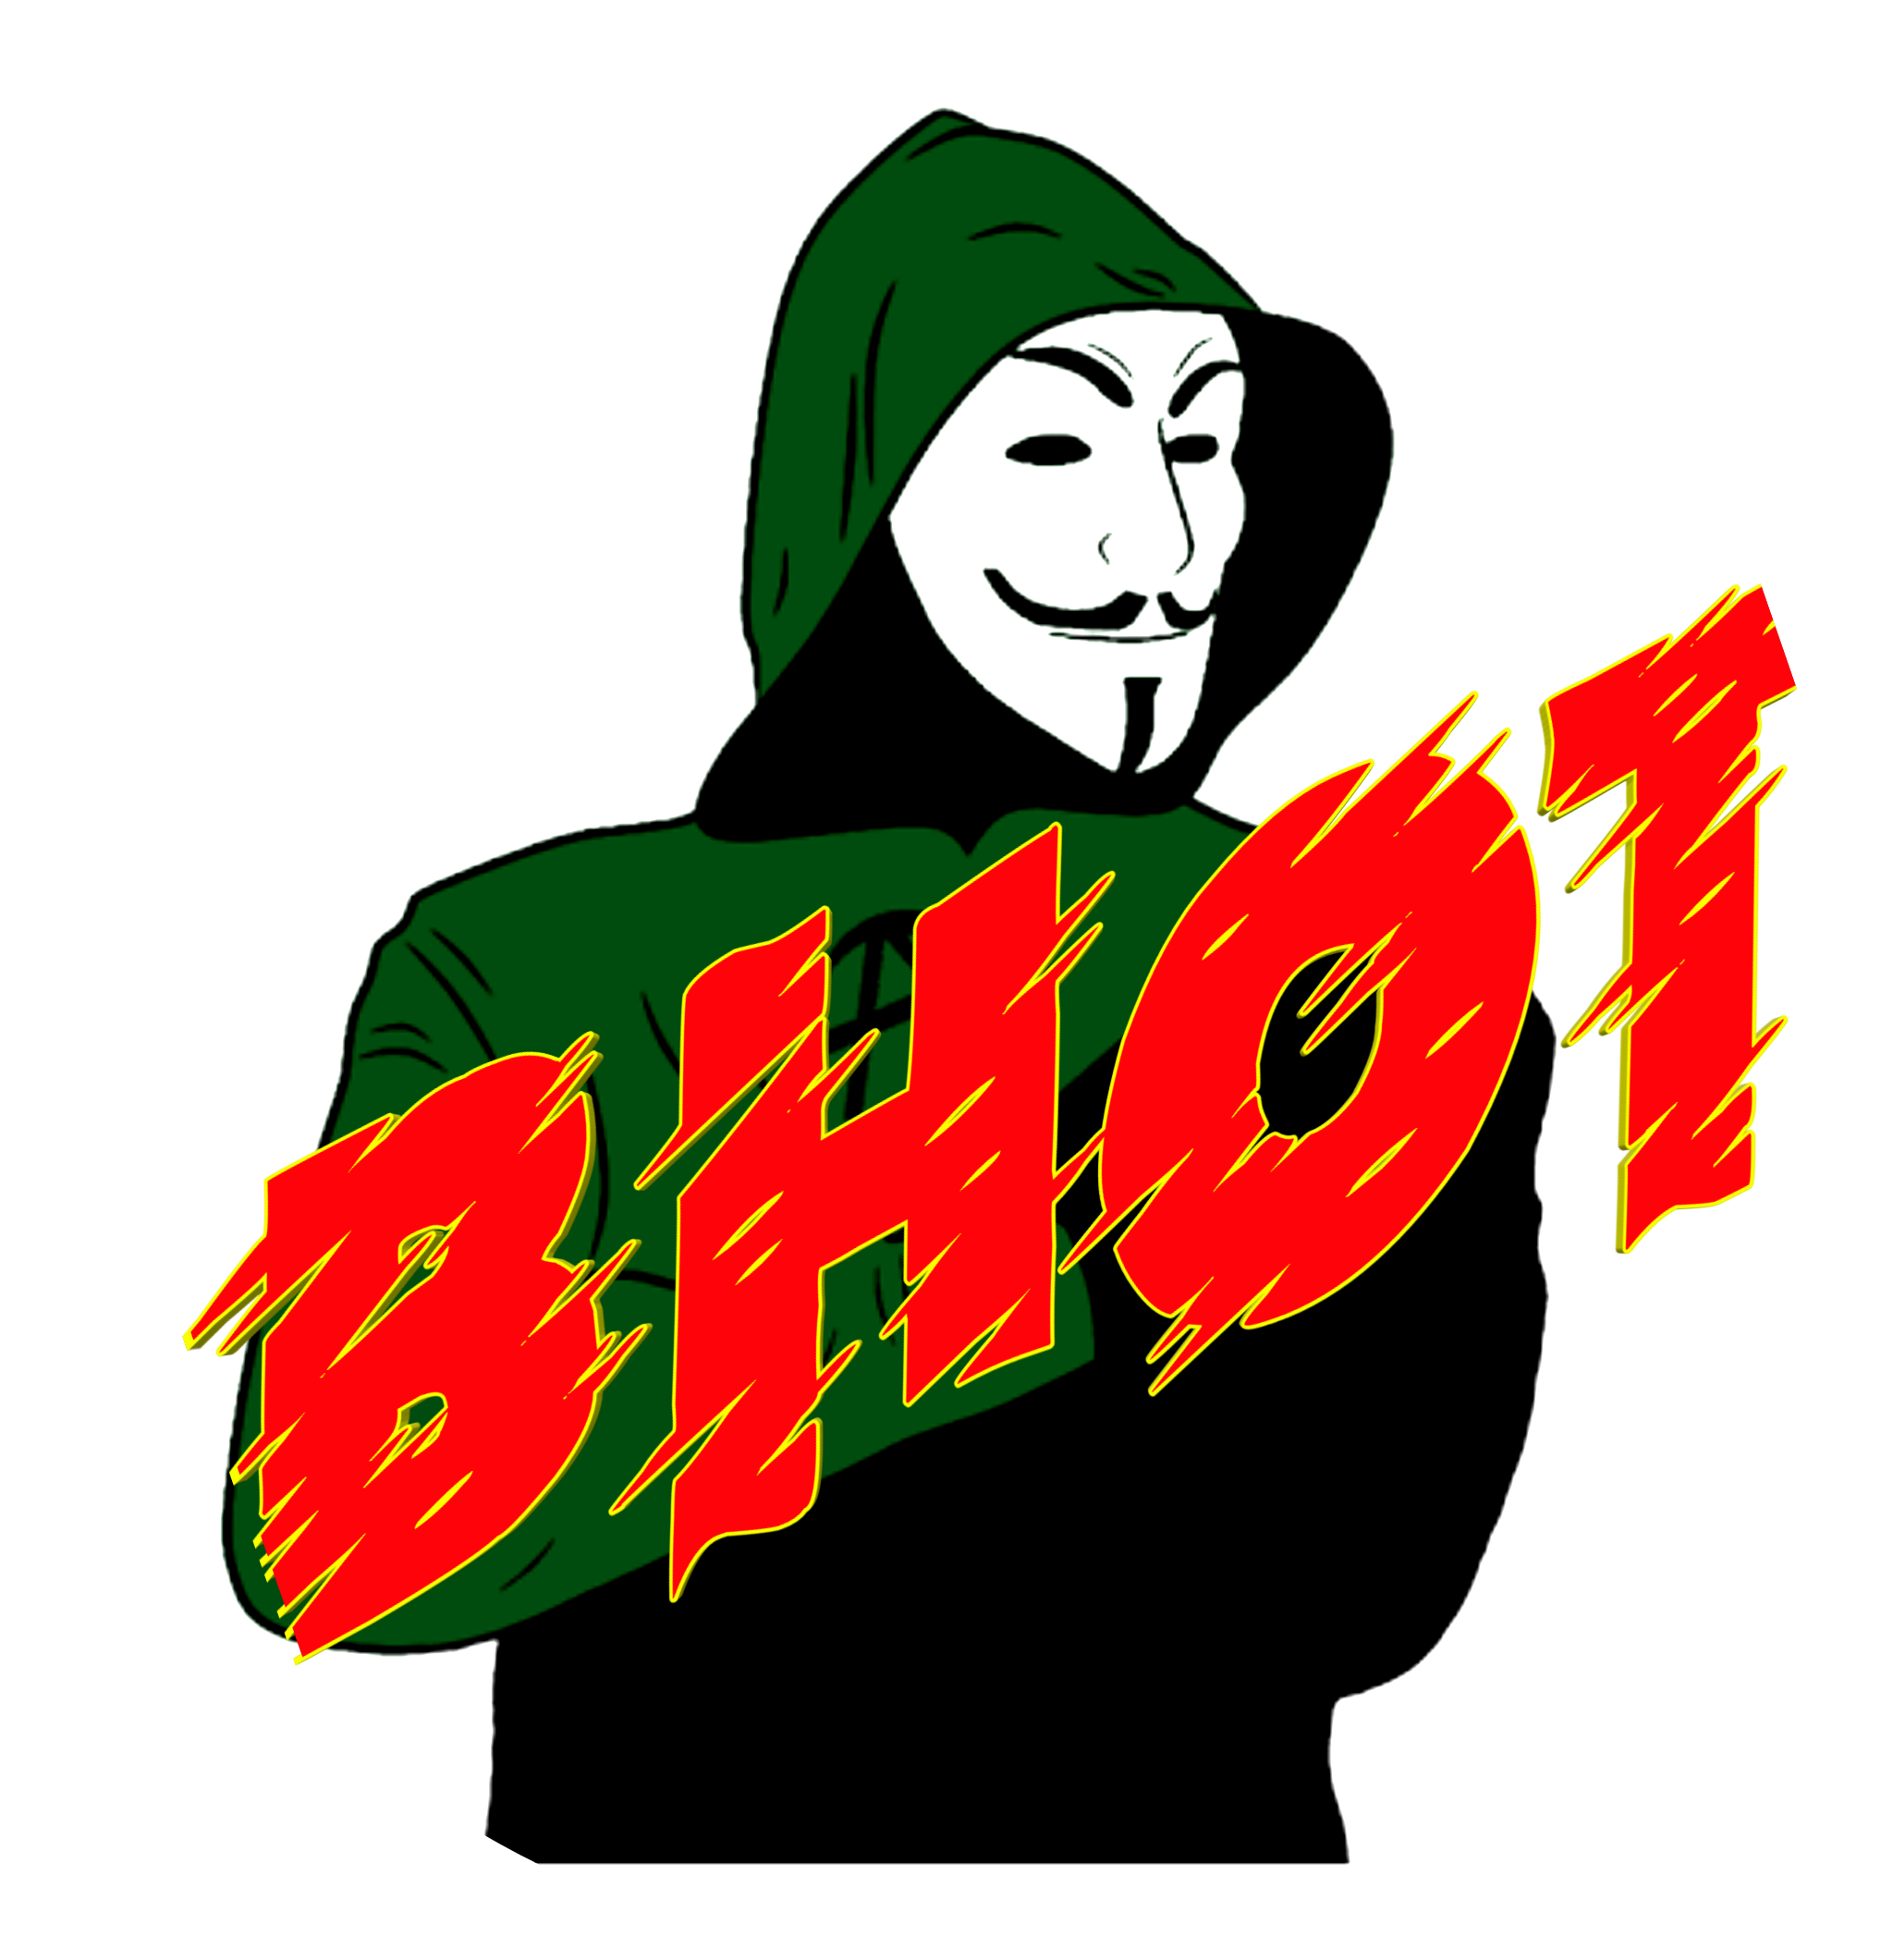 BHOT